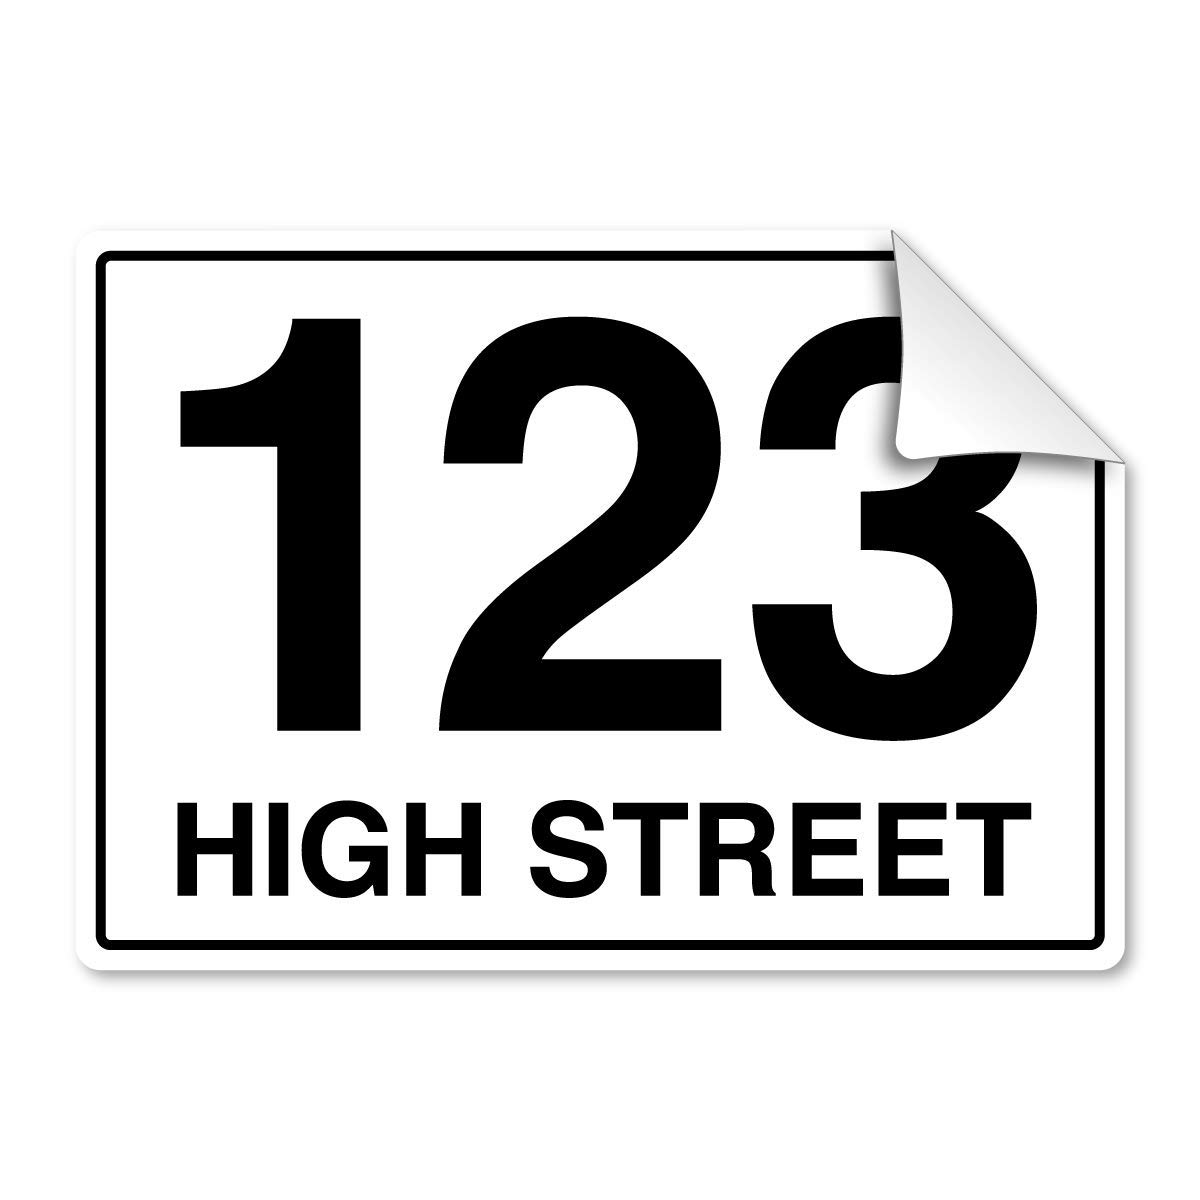 Pack of 4 personalised printed bin number stickers with road street name for waste containers a4 white self adhesive vinyl amazon co uk kitchen home